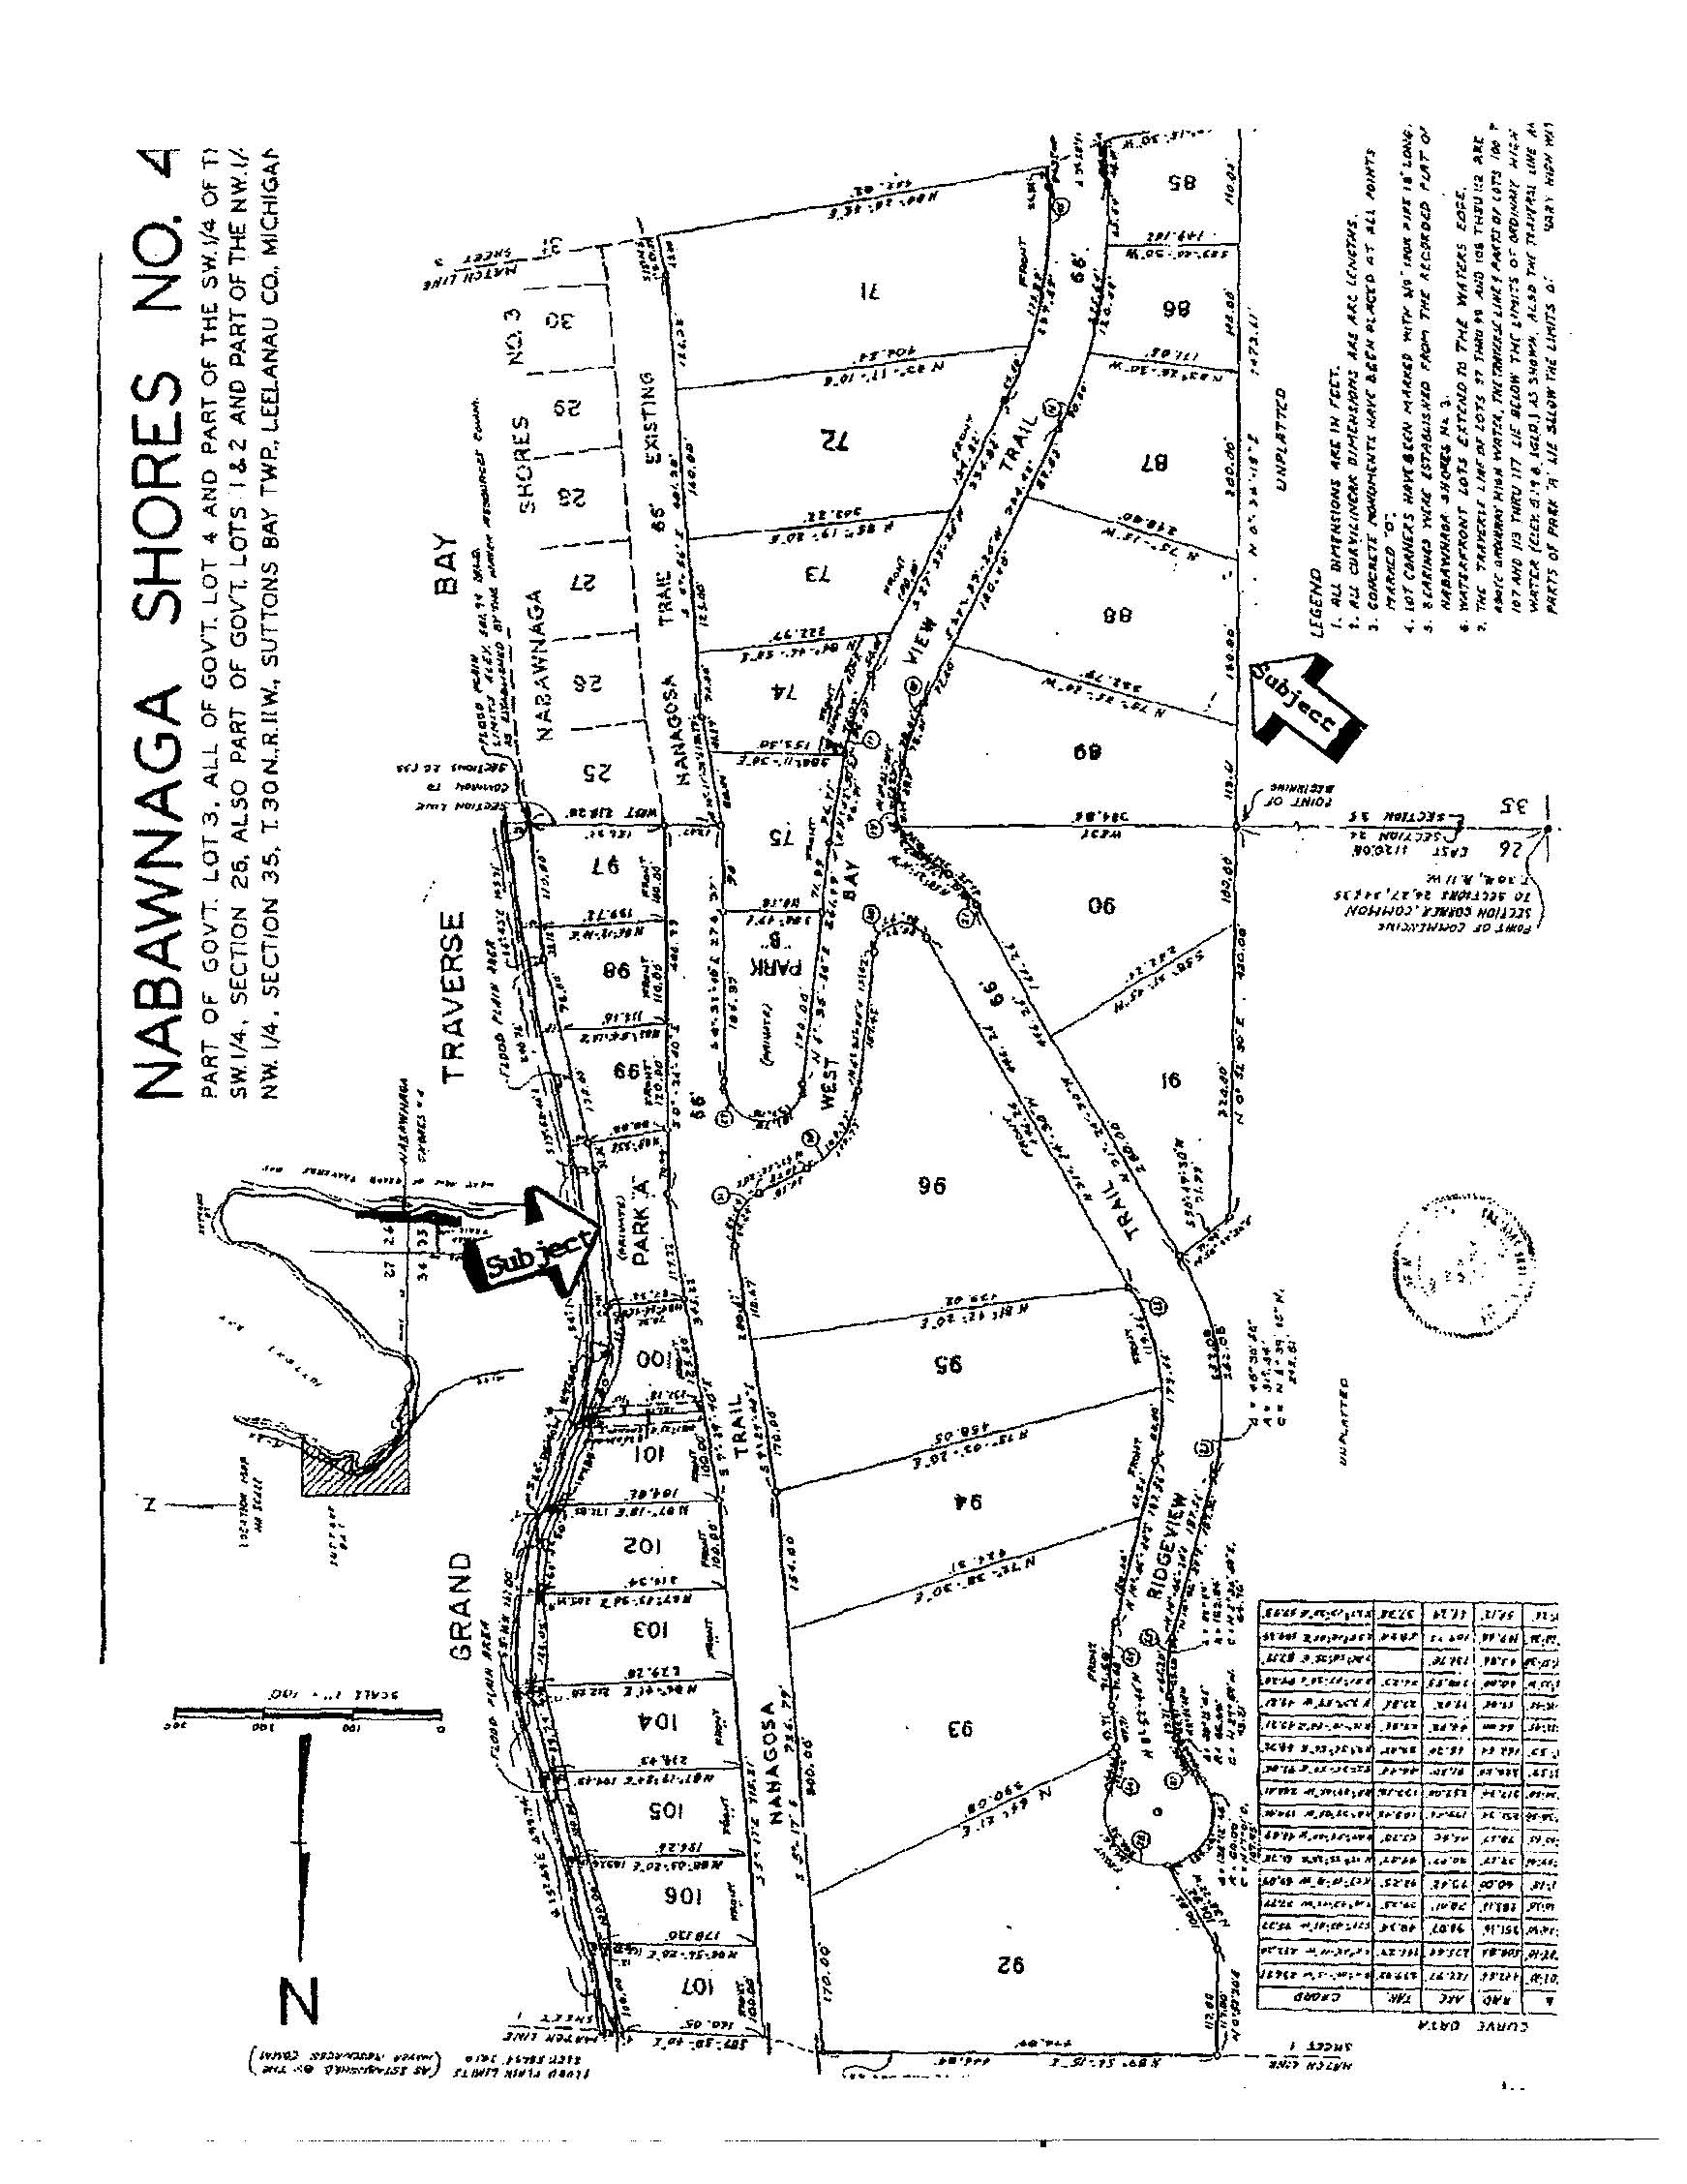 S Bay View Trail Lot 88, Suttons Bay - For Sale by Oltersdorf Realty LLC - Marketing Packet (6).jpg